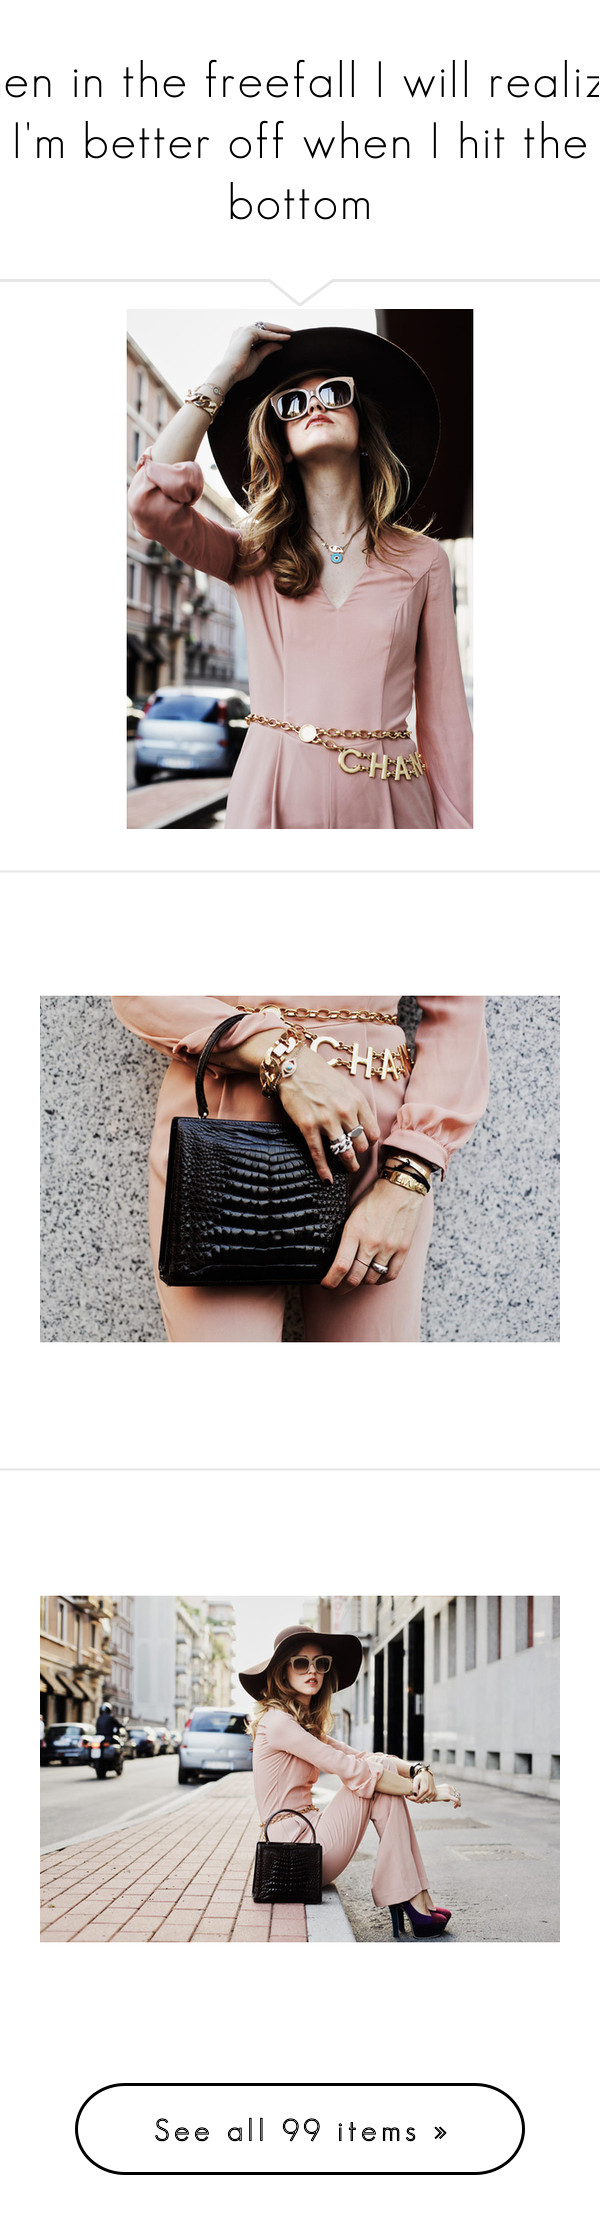 """Then in the freefall I will realize, I'm better off when I hit the bottom"" by brownish ❤ liked on Polyvore featuring brown, caramel, models, people, backgrounds, photos, pictures, details, girls and pants"